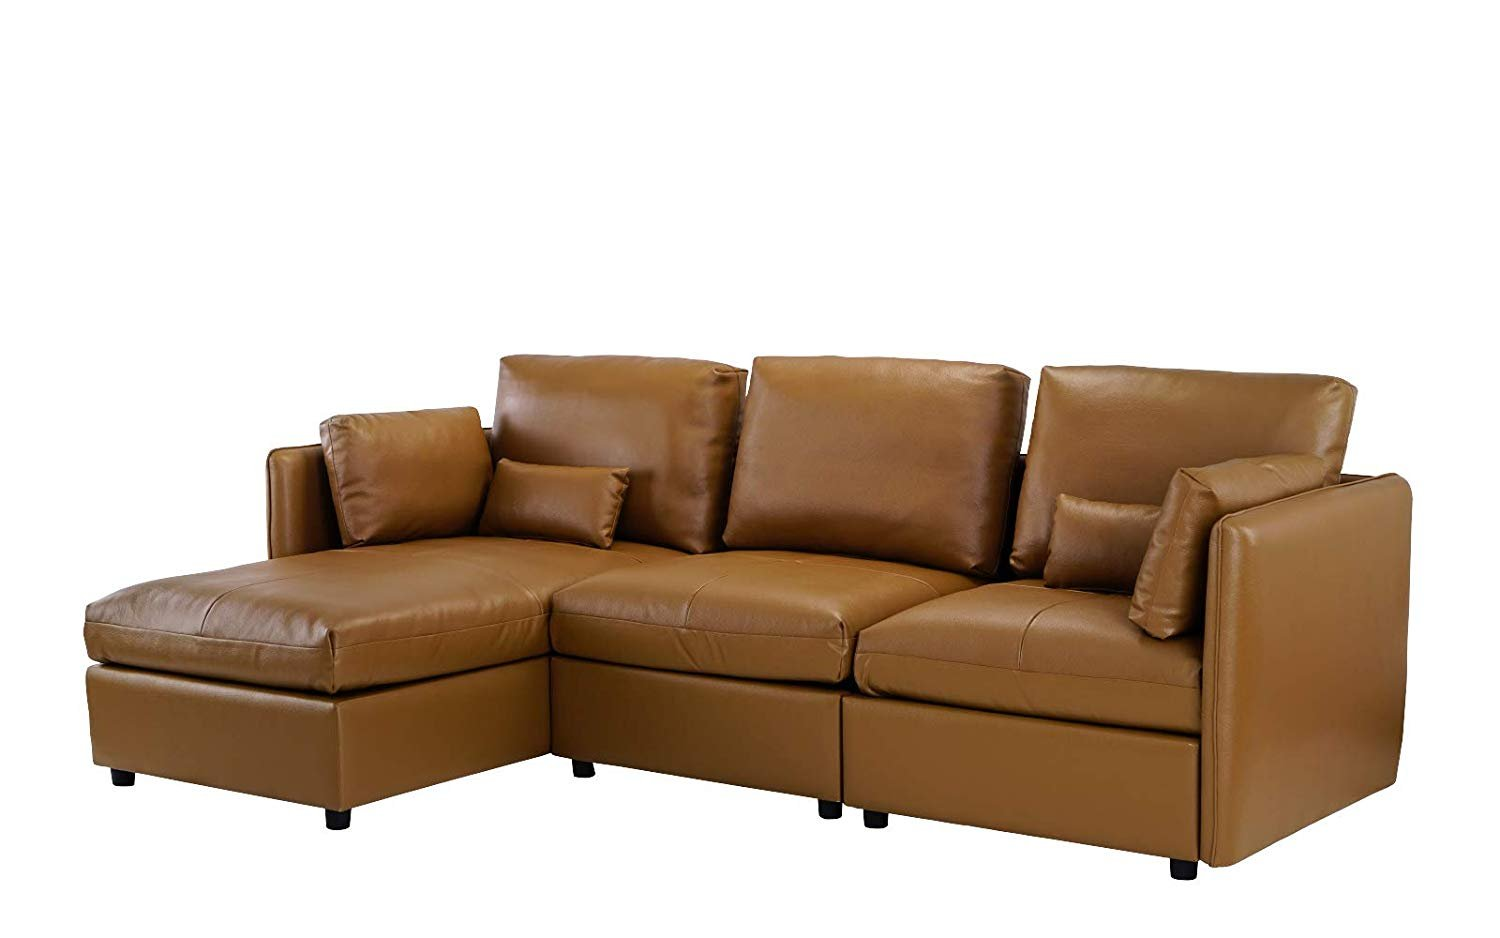 L Shape Living Room Leather Match Sectional Sofa, Left Facing Chaise Lounge  (Light Brown)